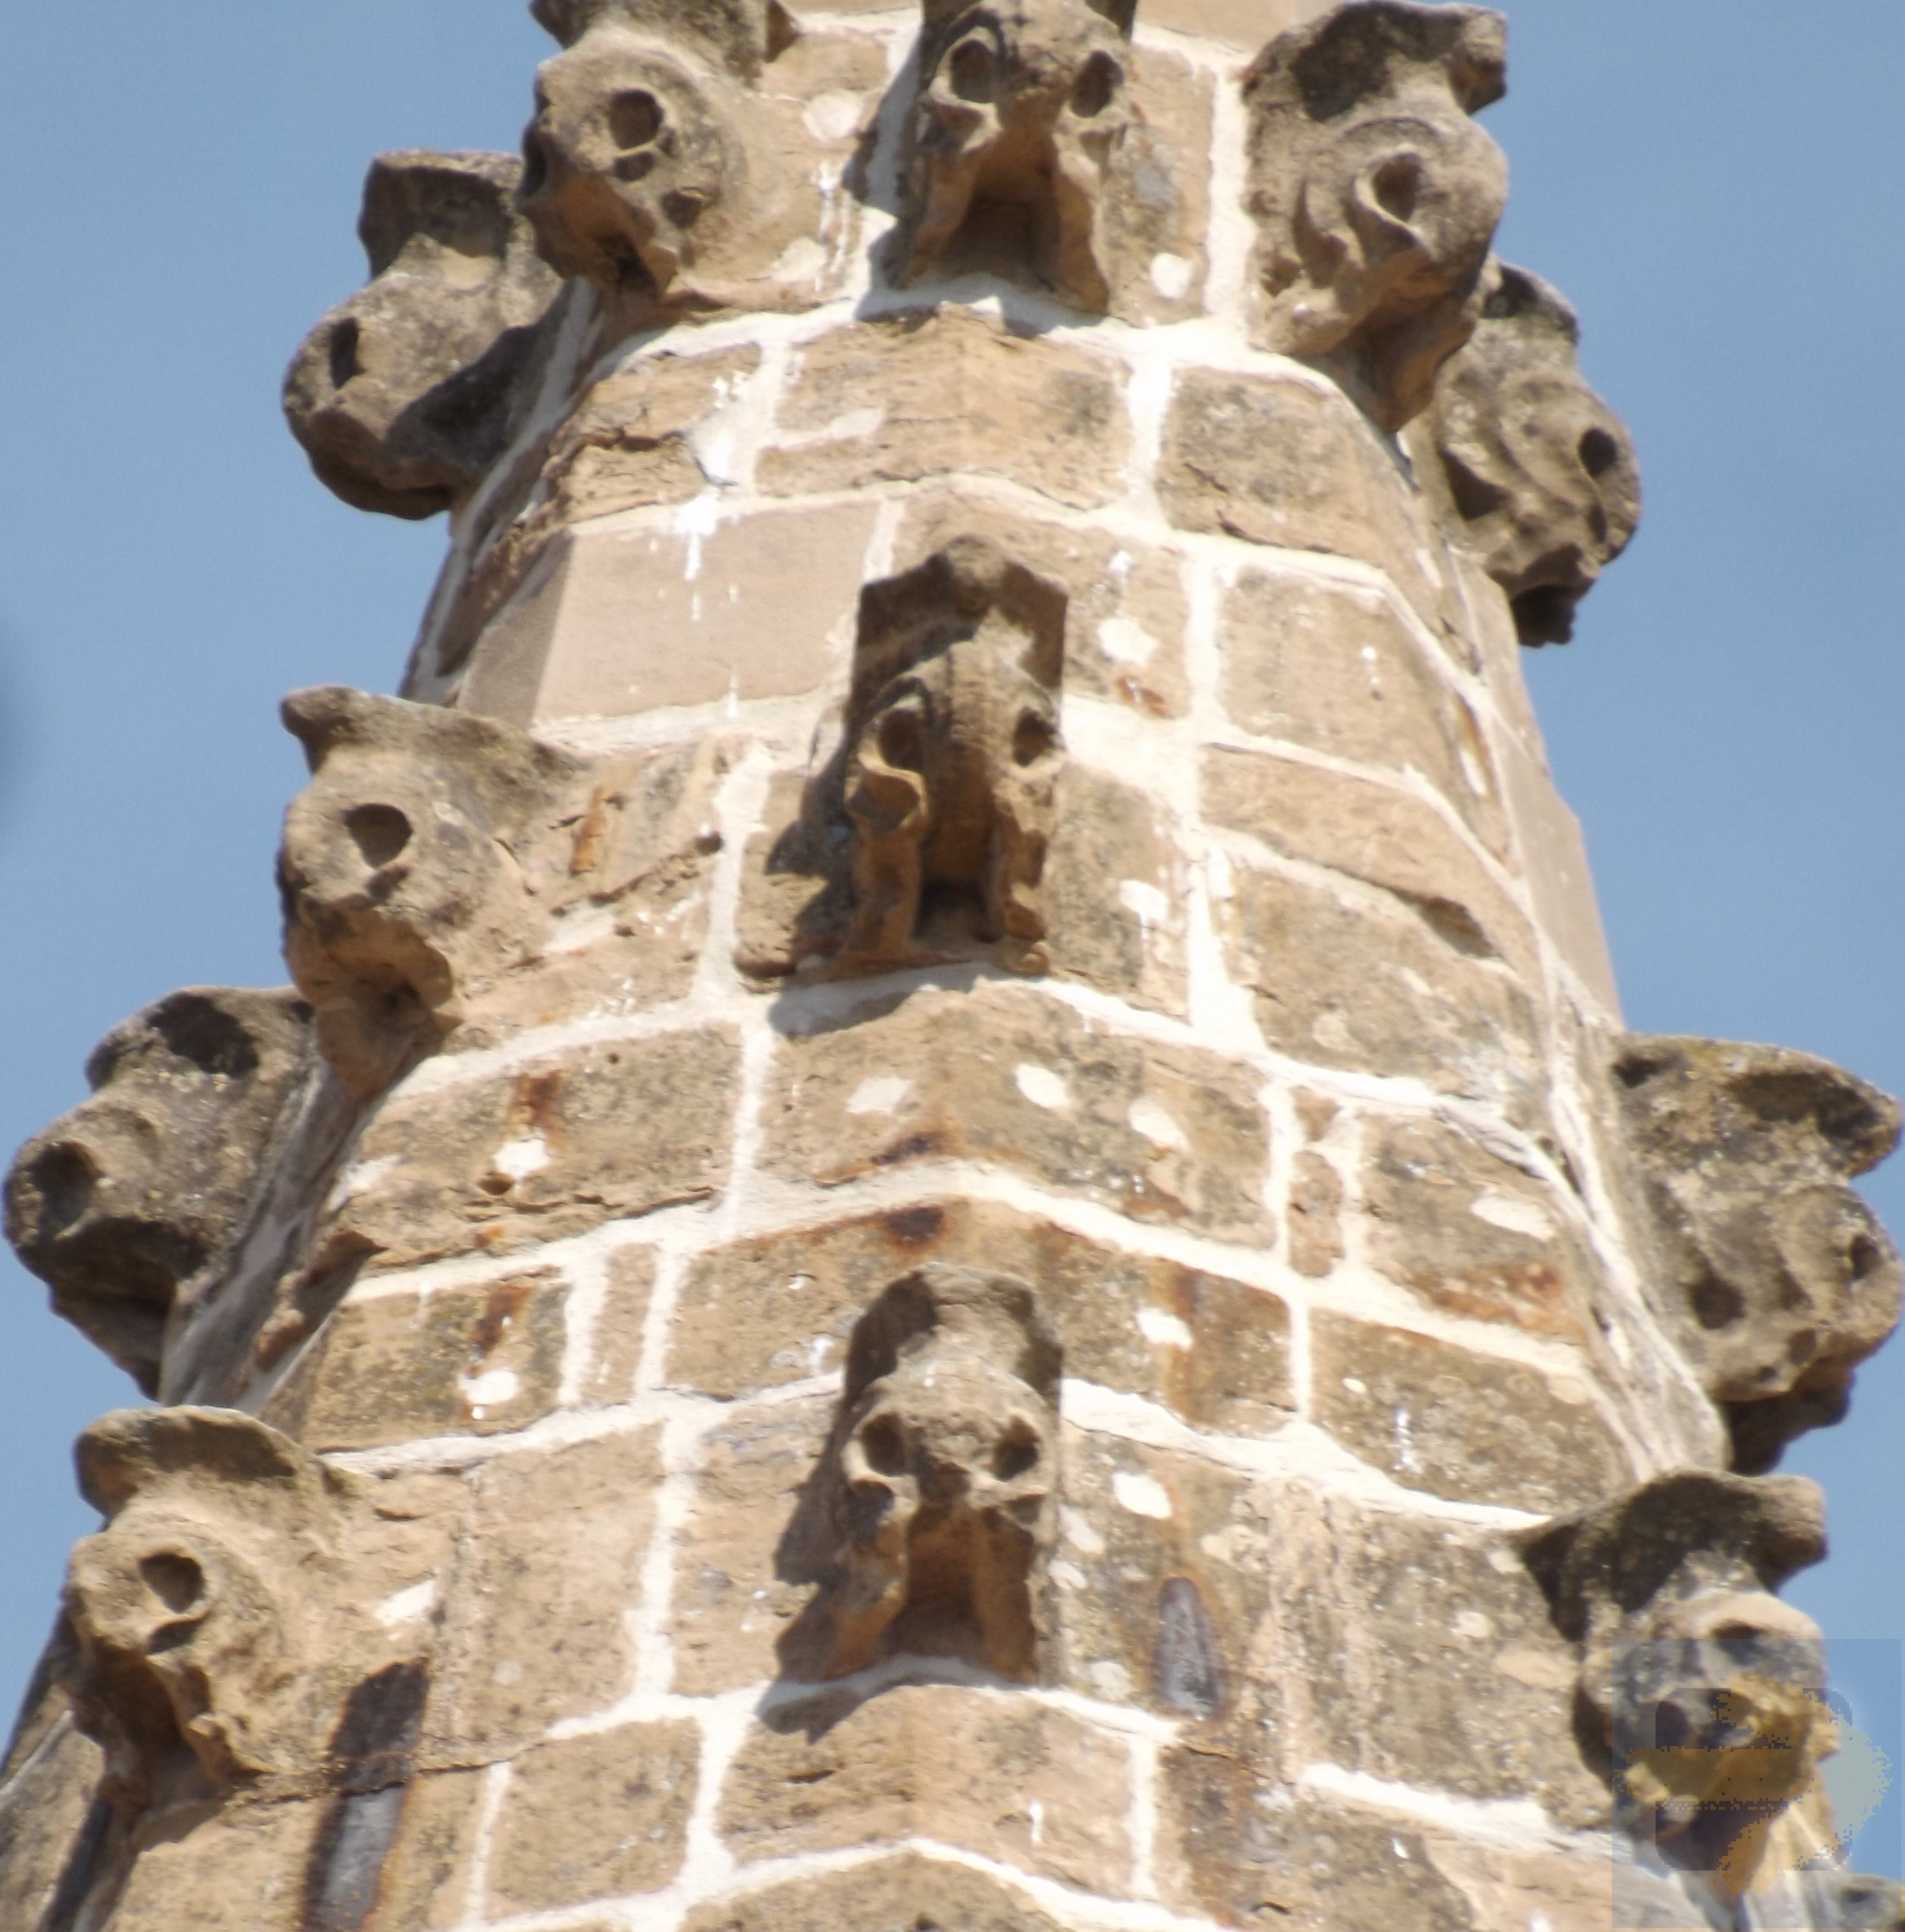 Tower of spooky heads taken from cloister Santa Maria Pamplona